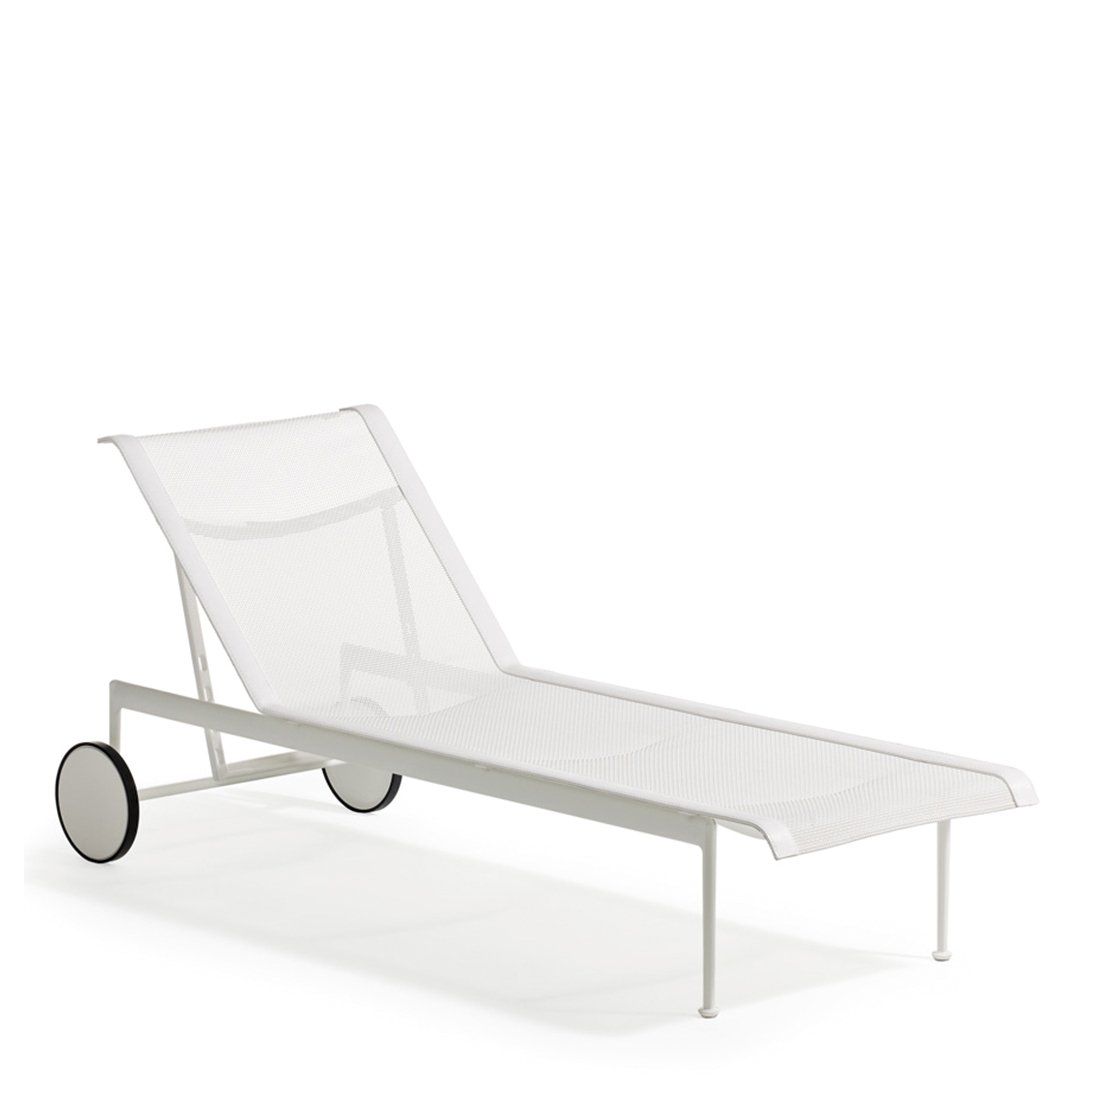 Knoll 1966 Chaise Longue Wit